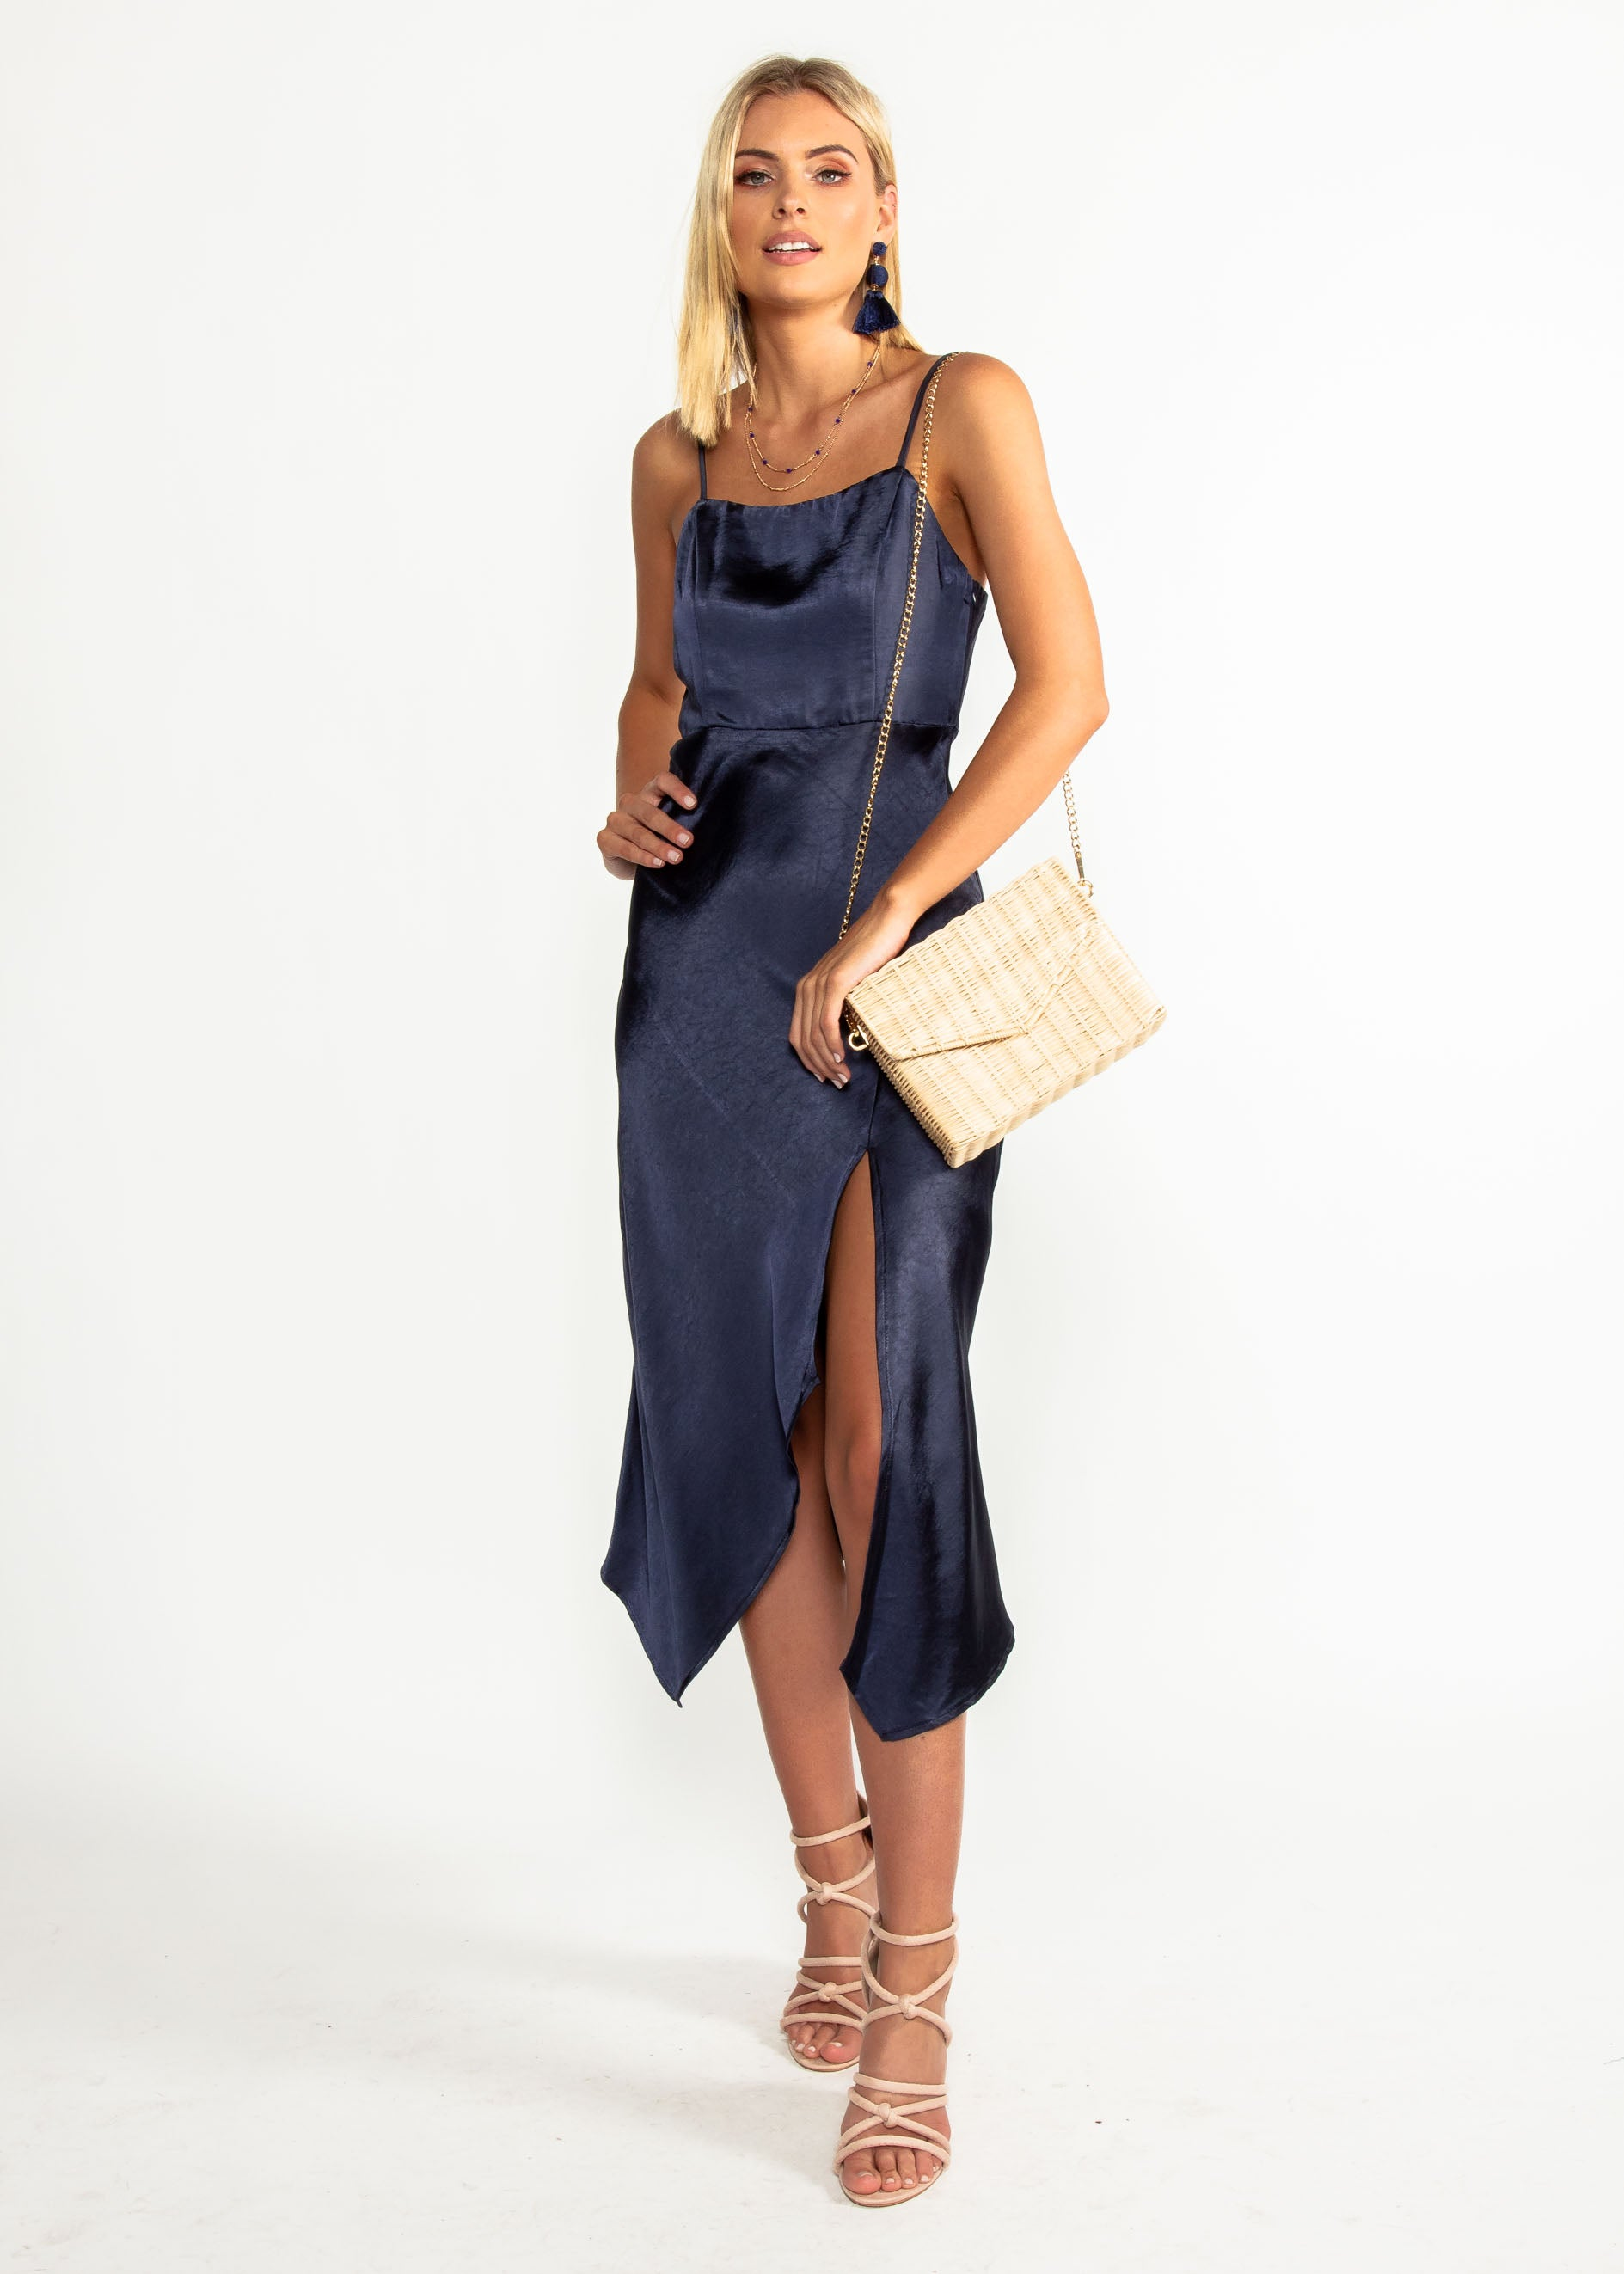 Firestarter Midi Dress - Navy